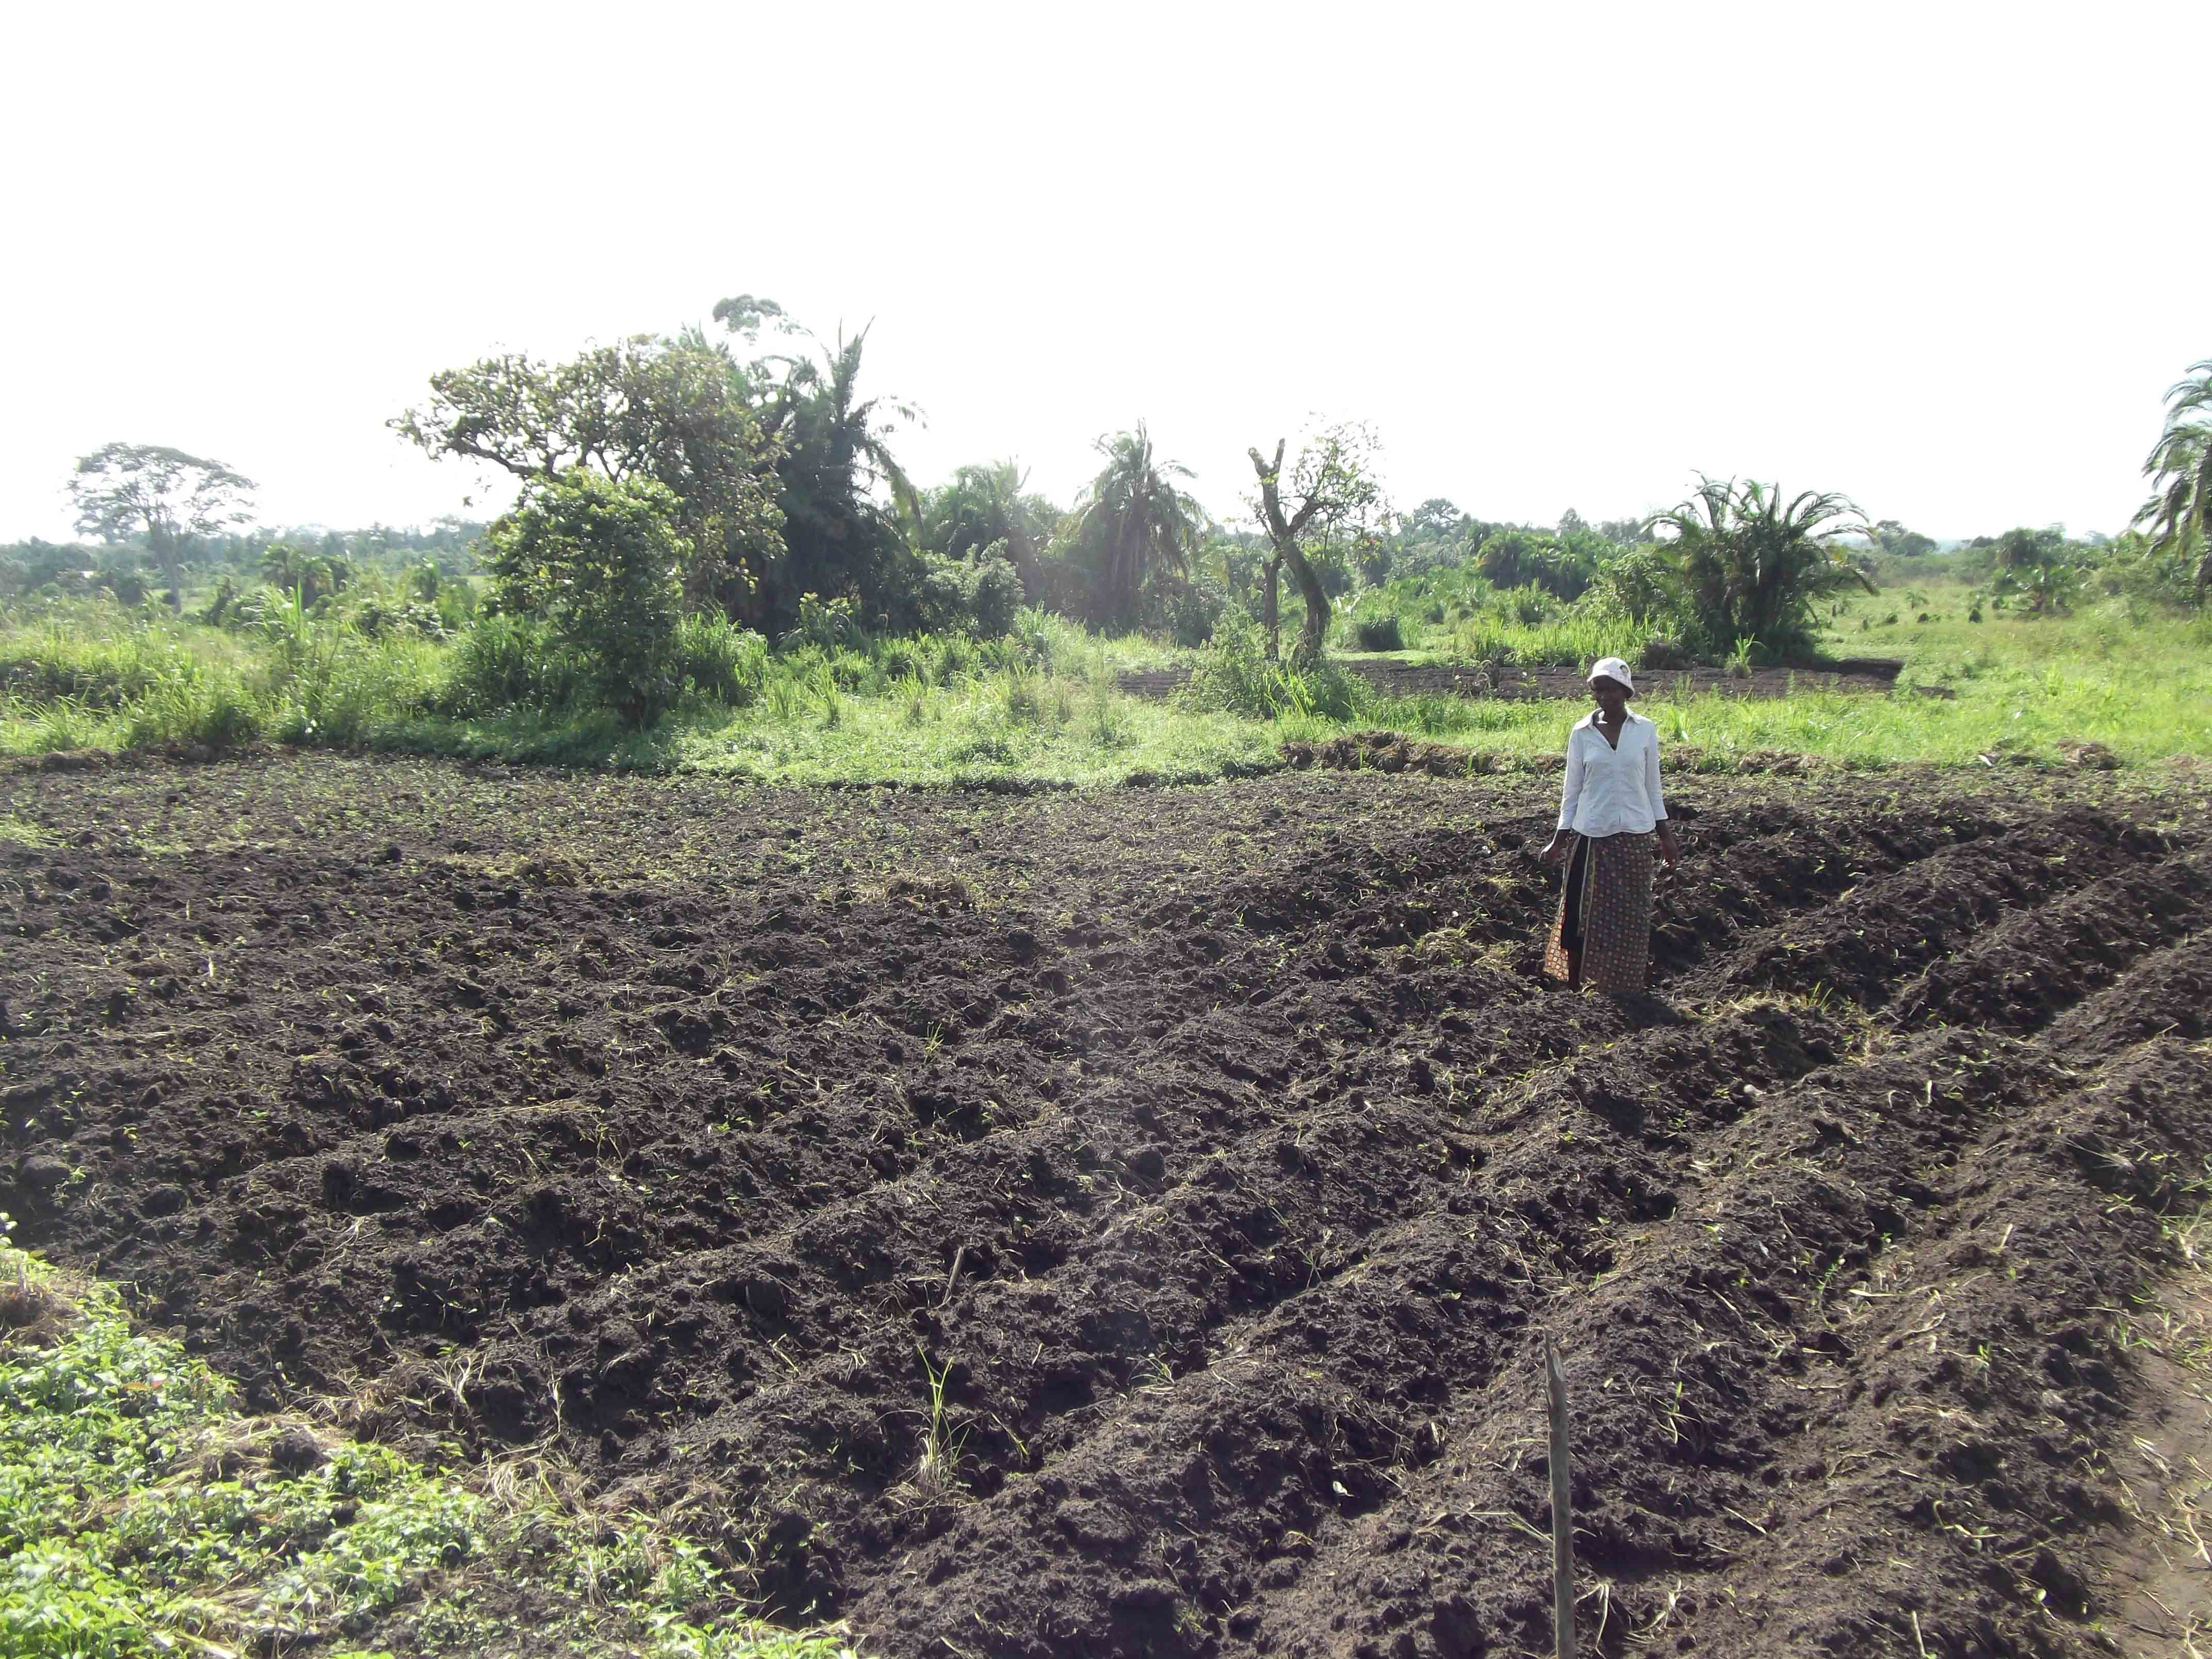 W-Planting-Sweet-Potatoes-at-Revival-Farm-2011